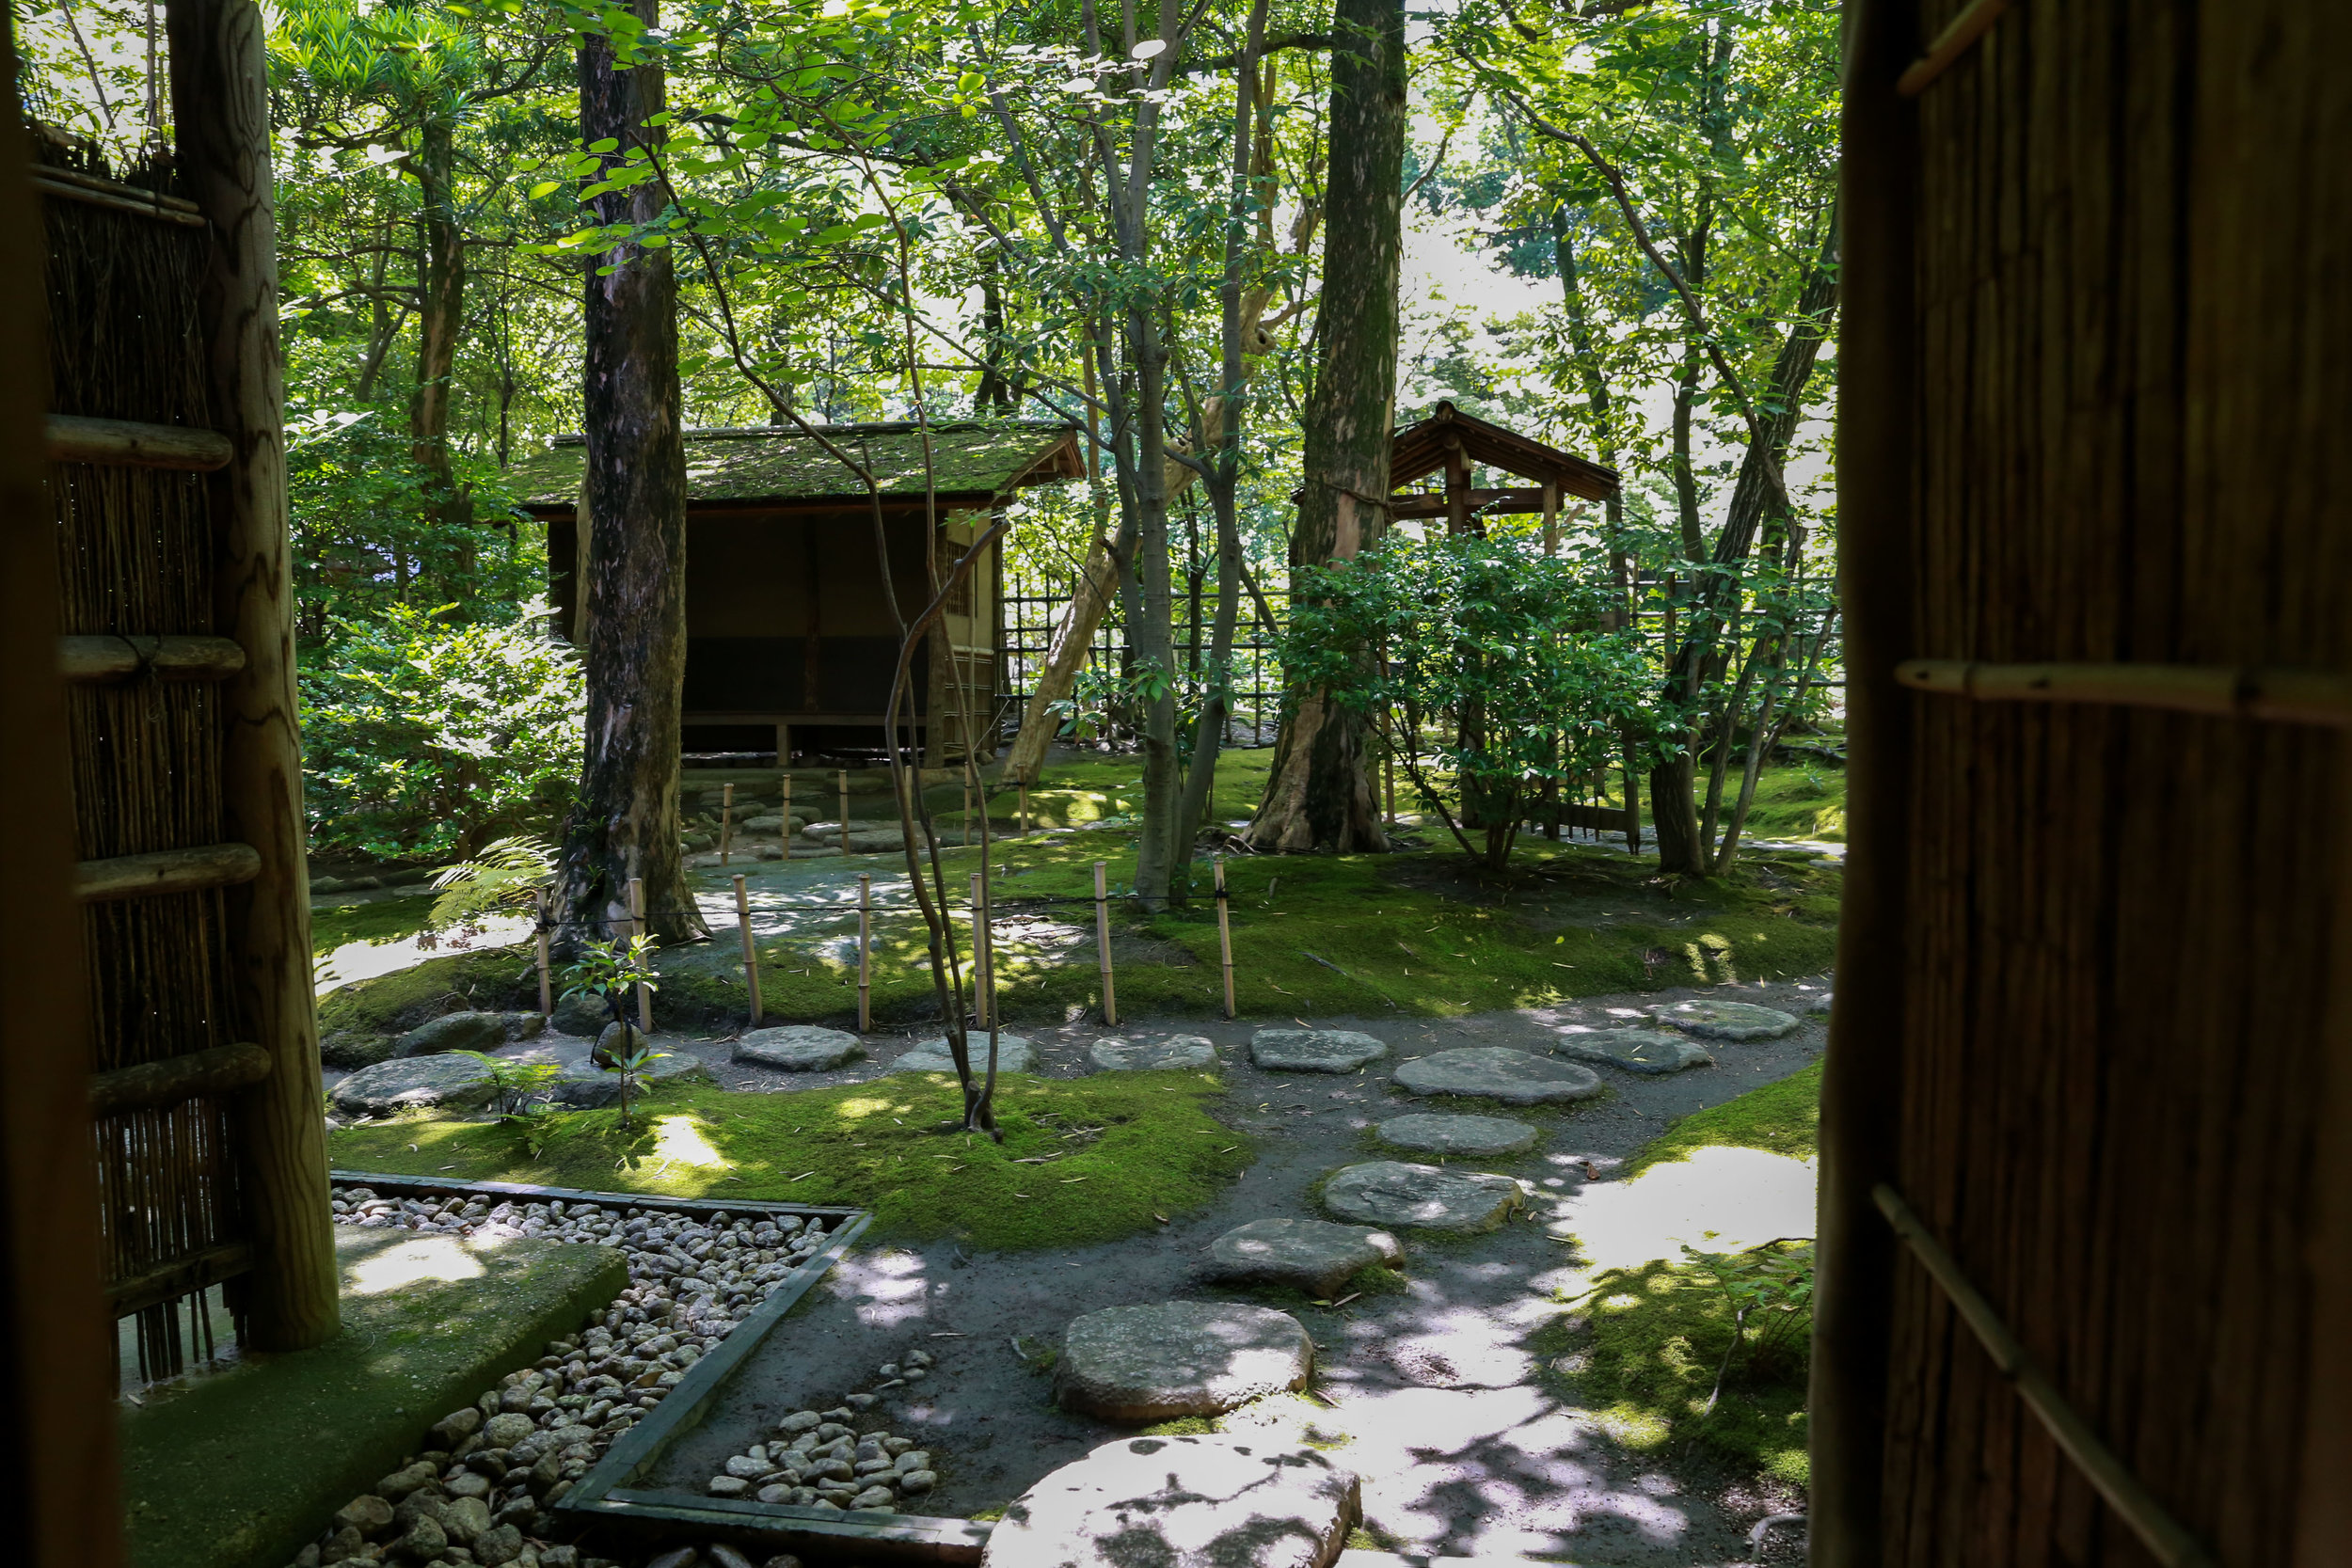 The private tea garden avalible to tea cermony participants at the Rakusui-en in Fukuoka, Japan, June 22, 2018.